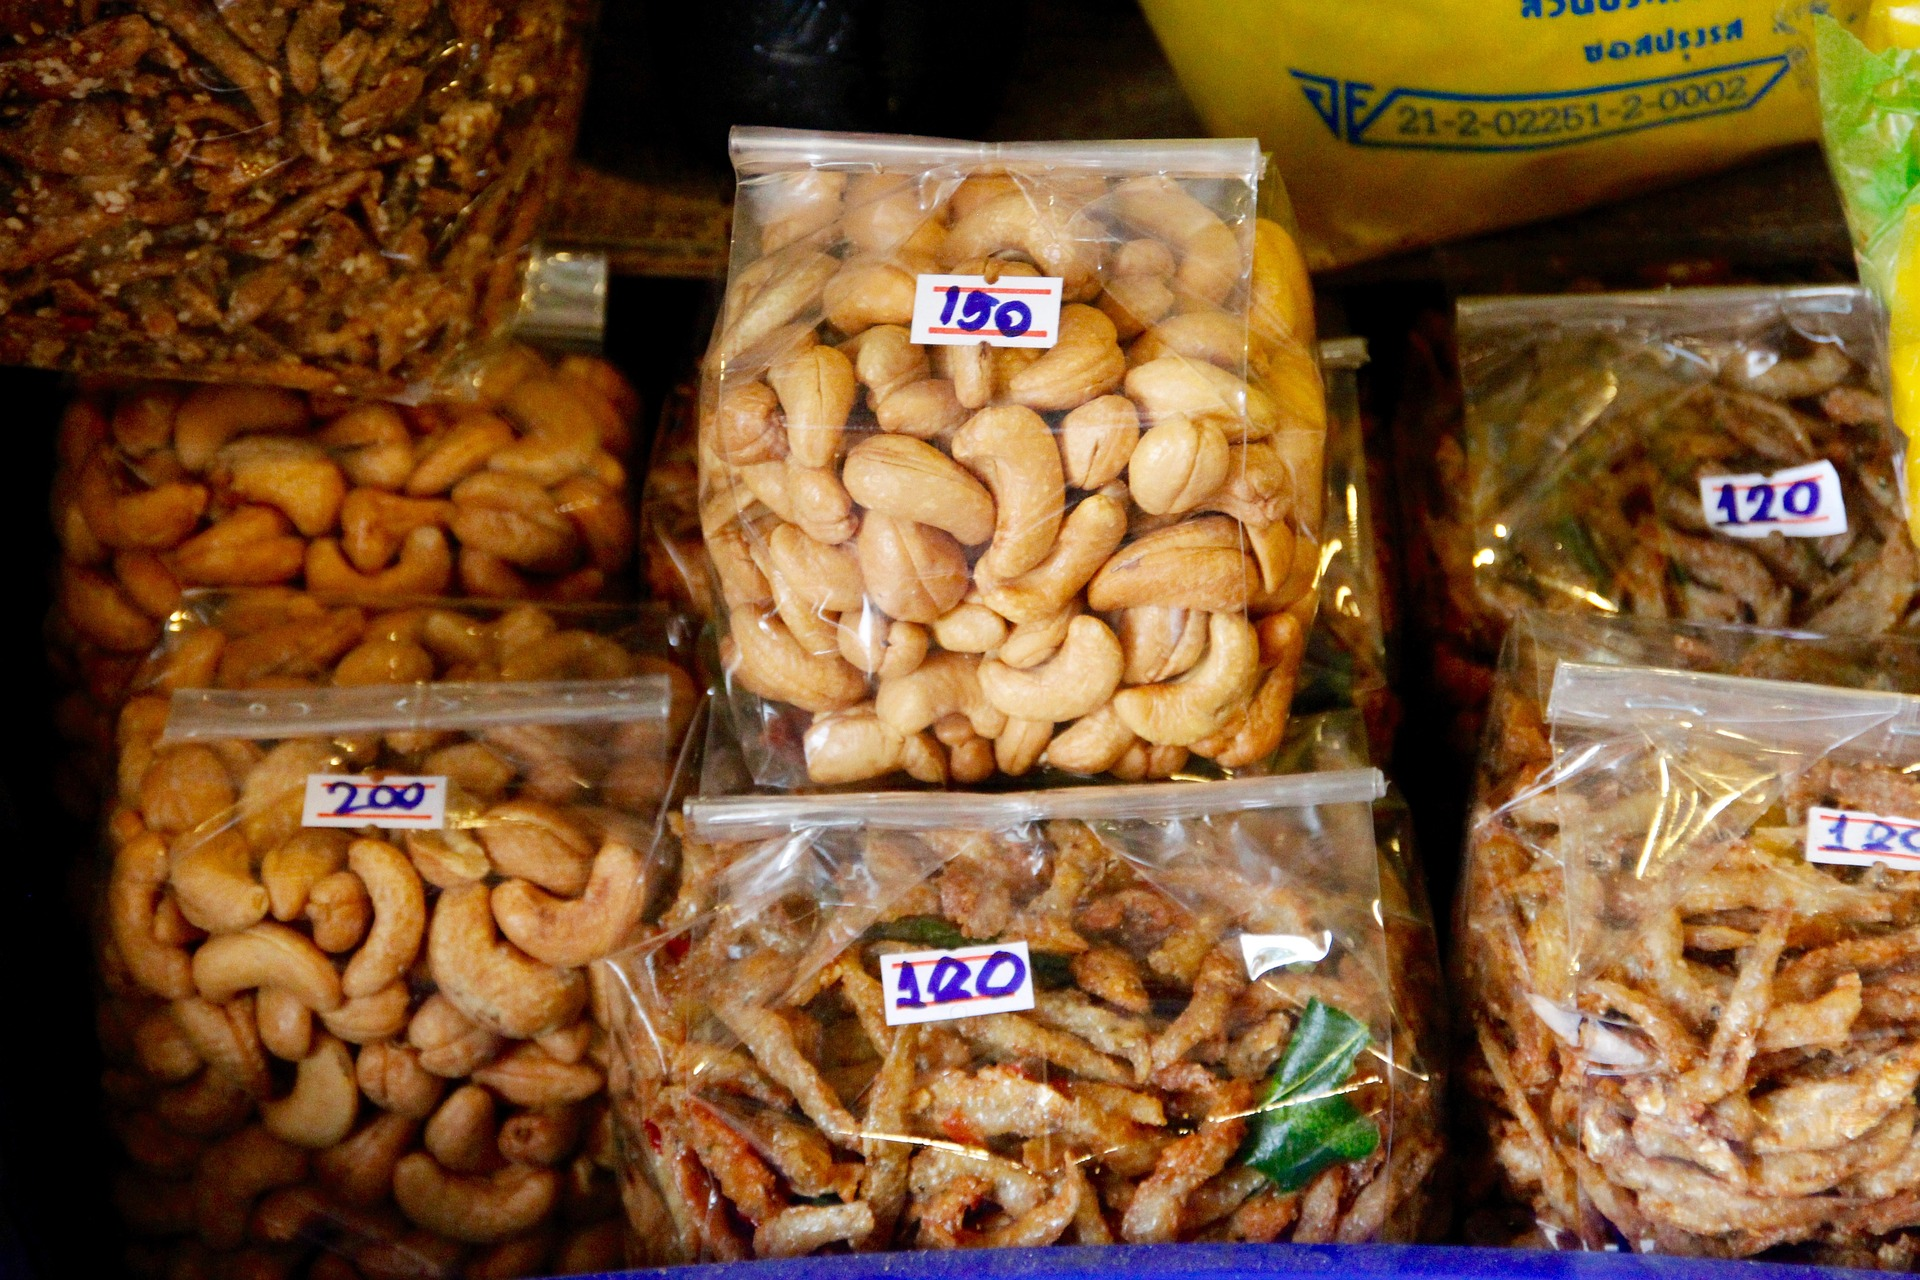 bags of nuts